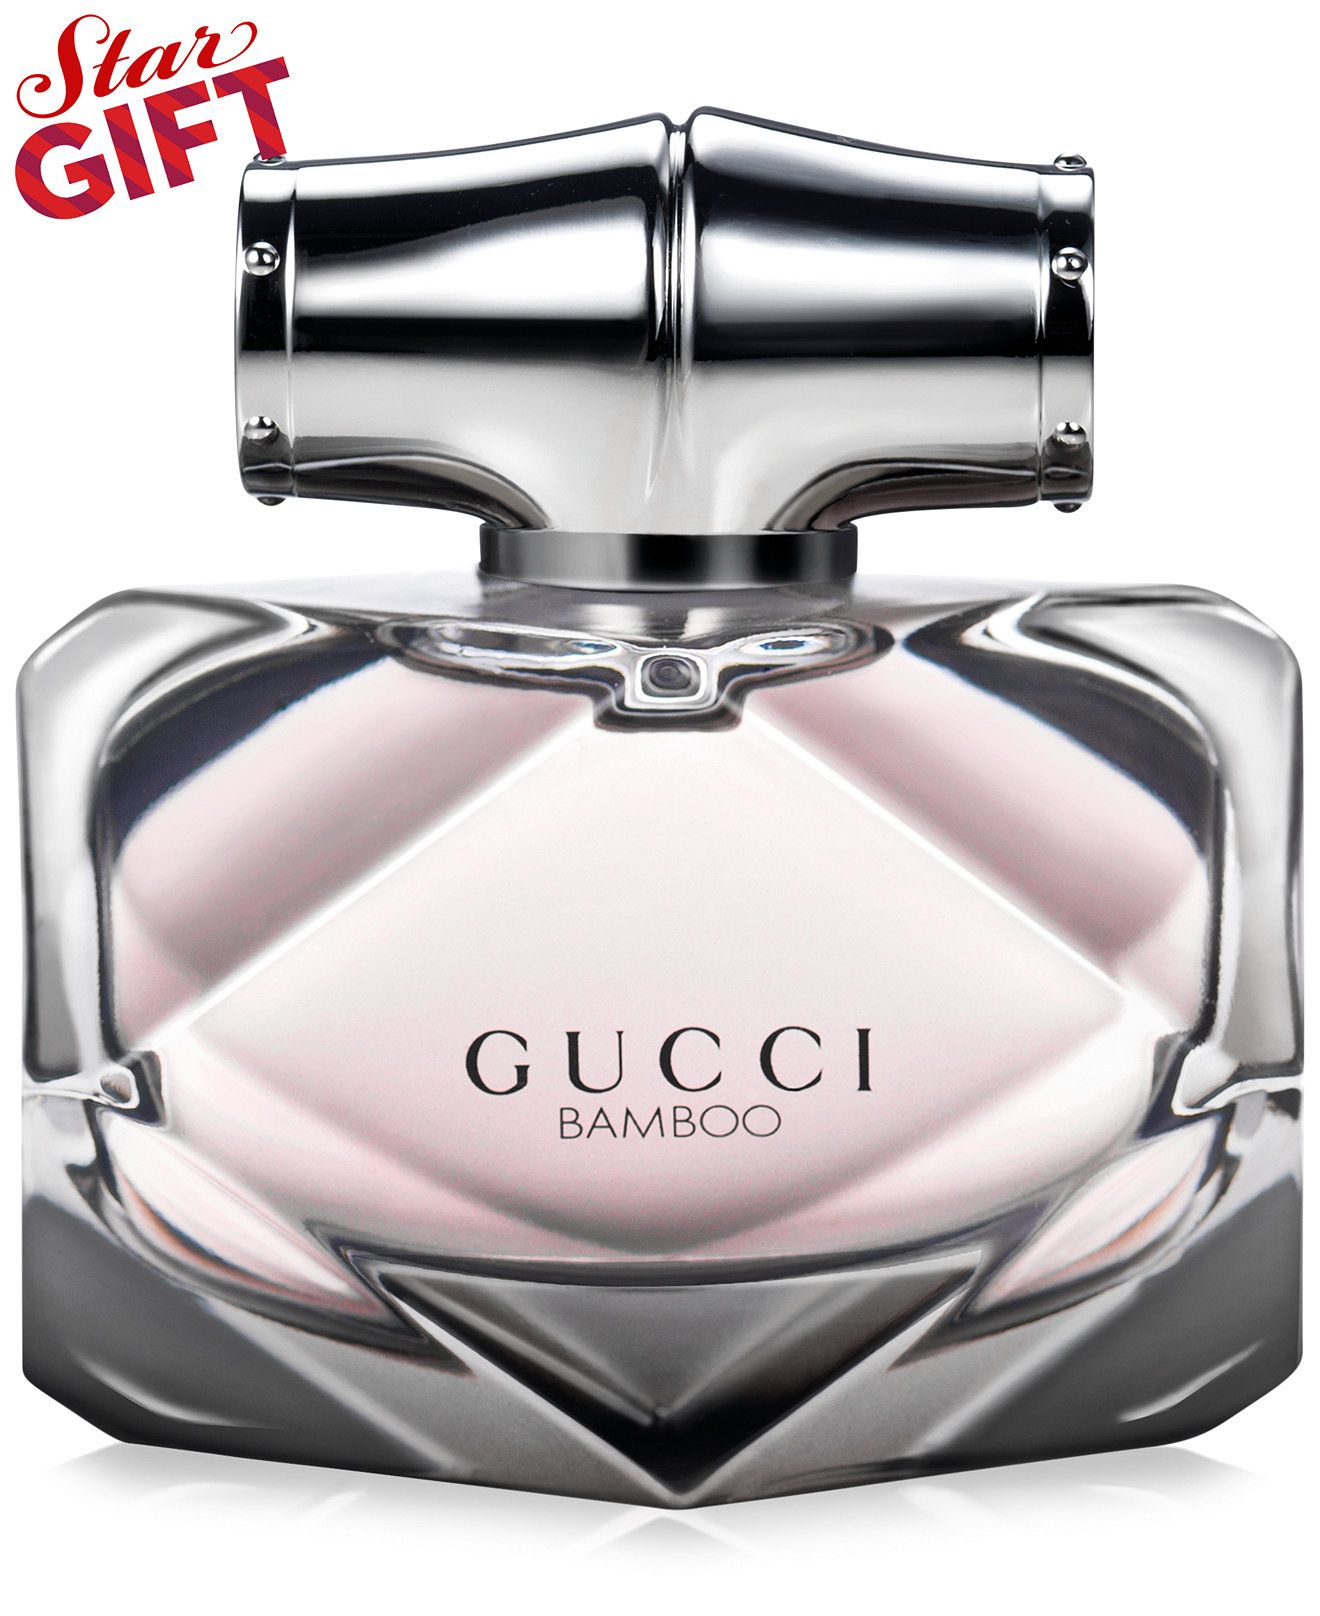 72f211b0 GUCCI BAMBOO Fragrance Collection for Women - Perfume - Beauty - Macy's